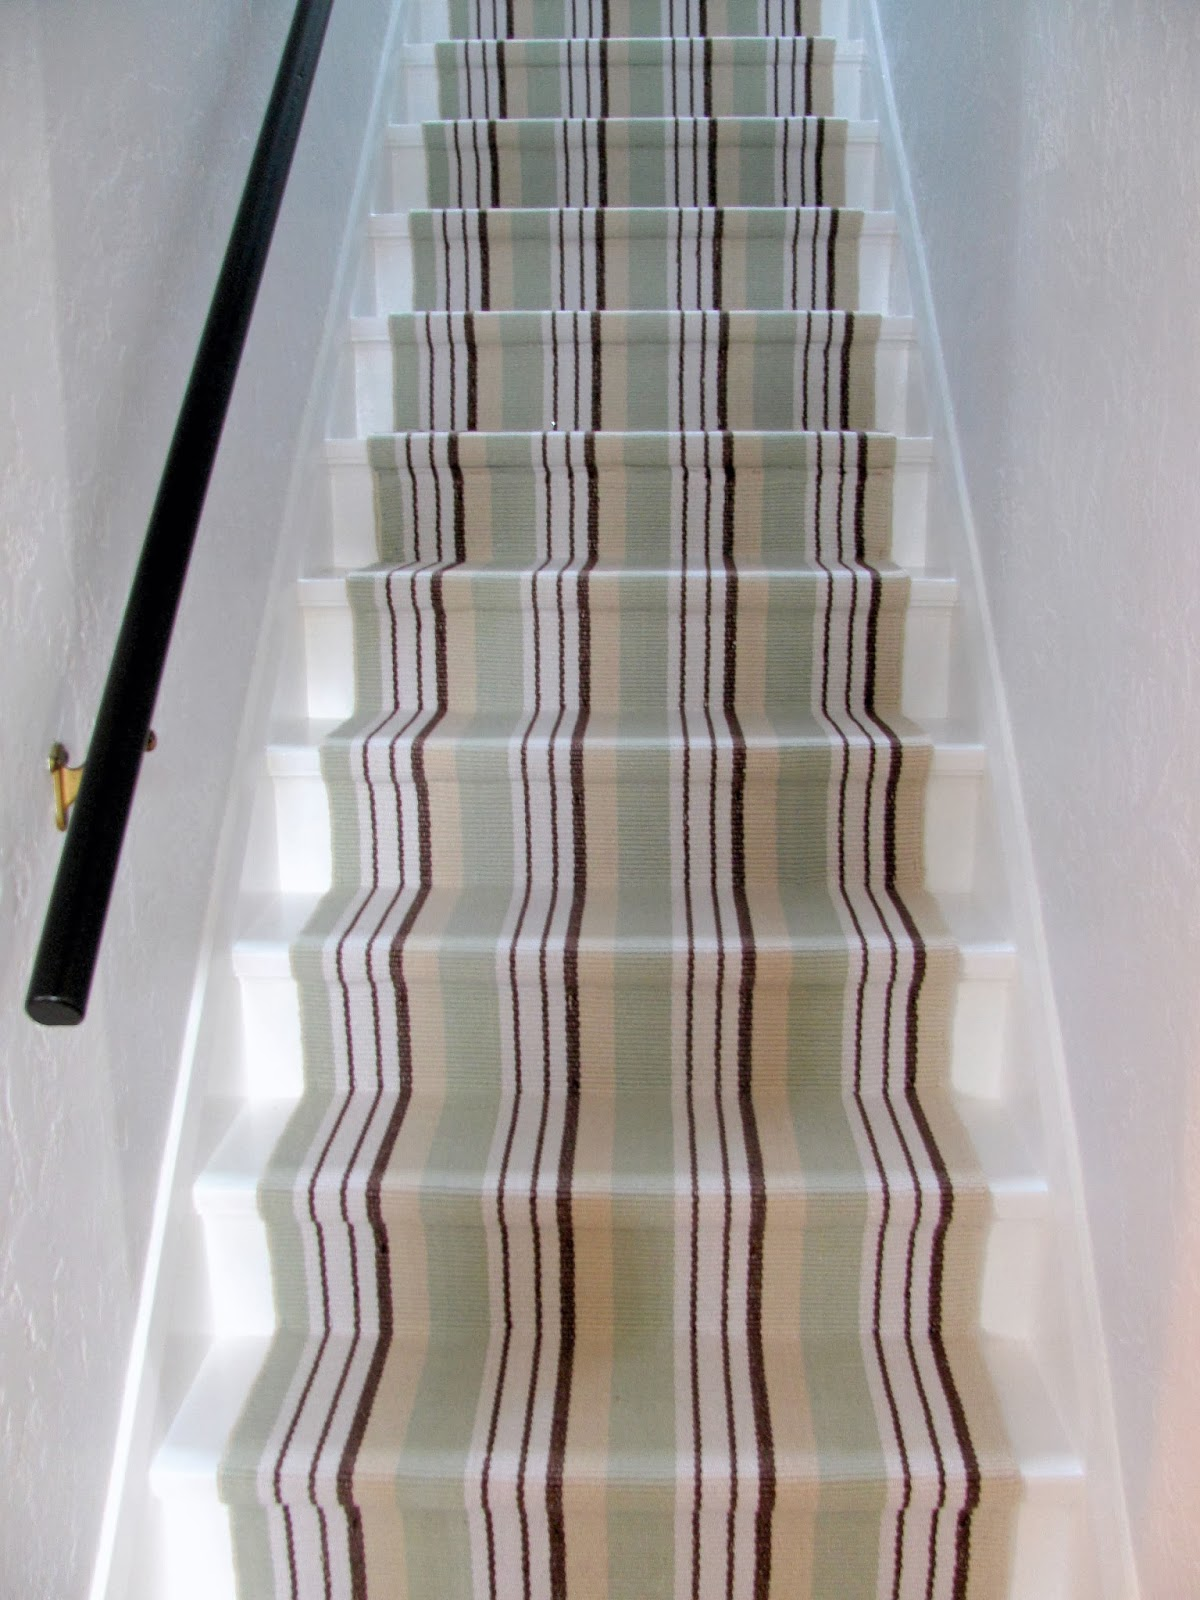 Dash and albert stair runner installation for Dash and albert runners